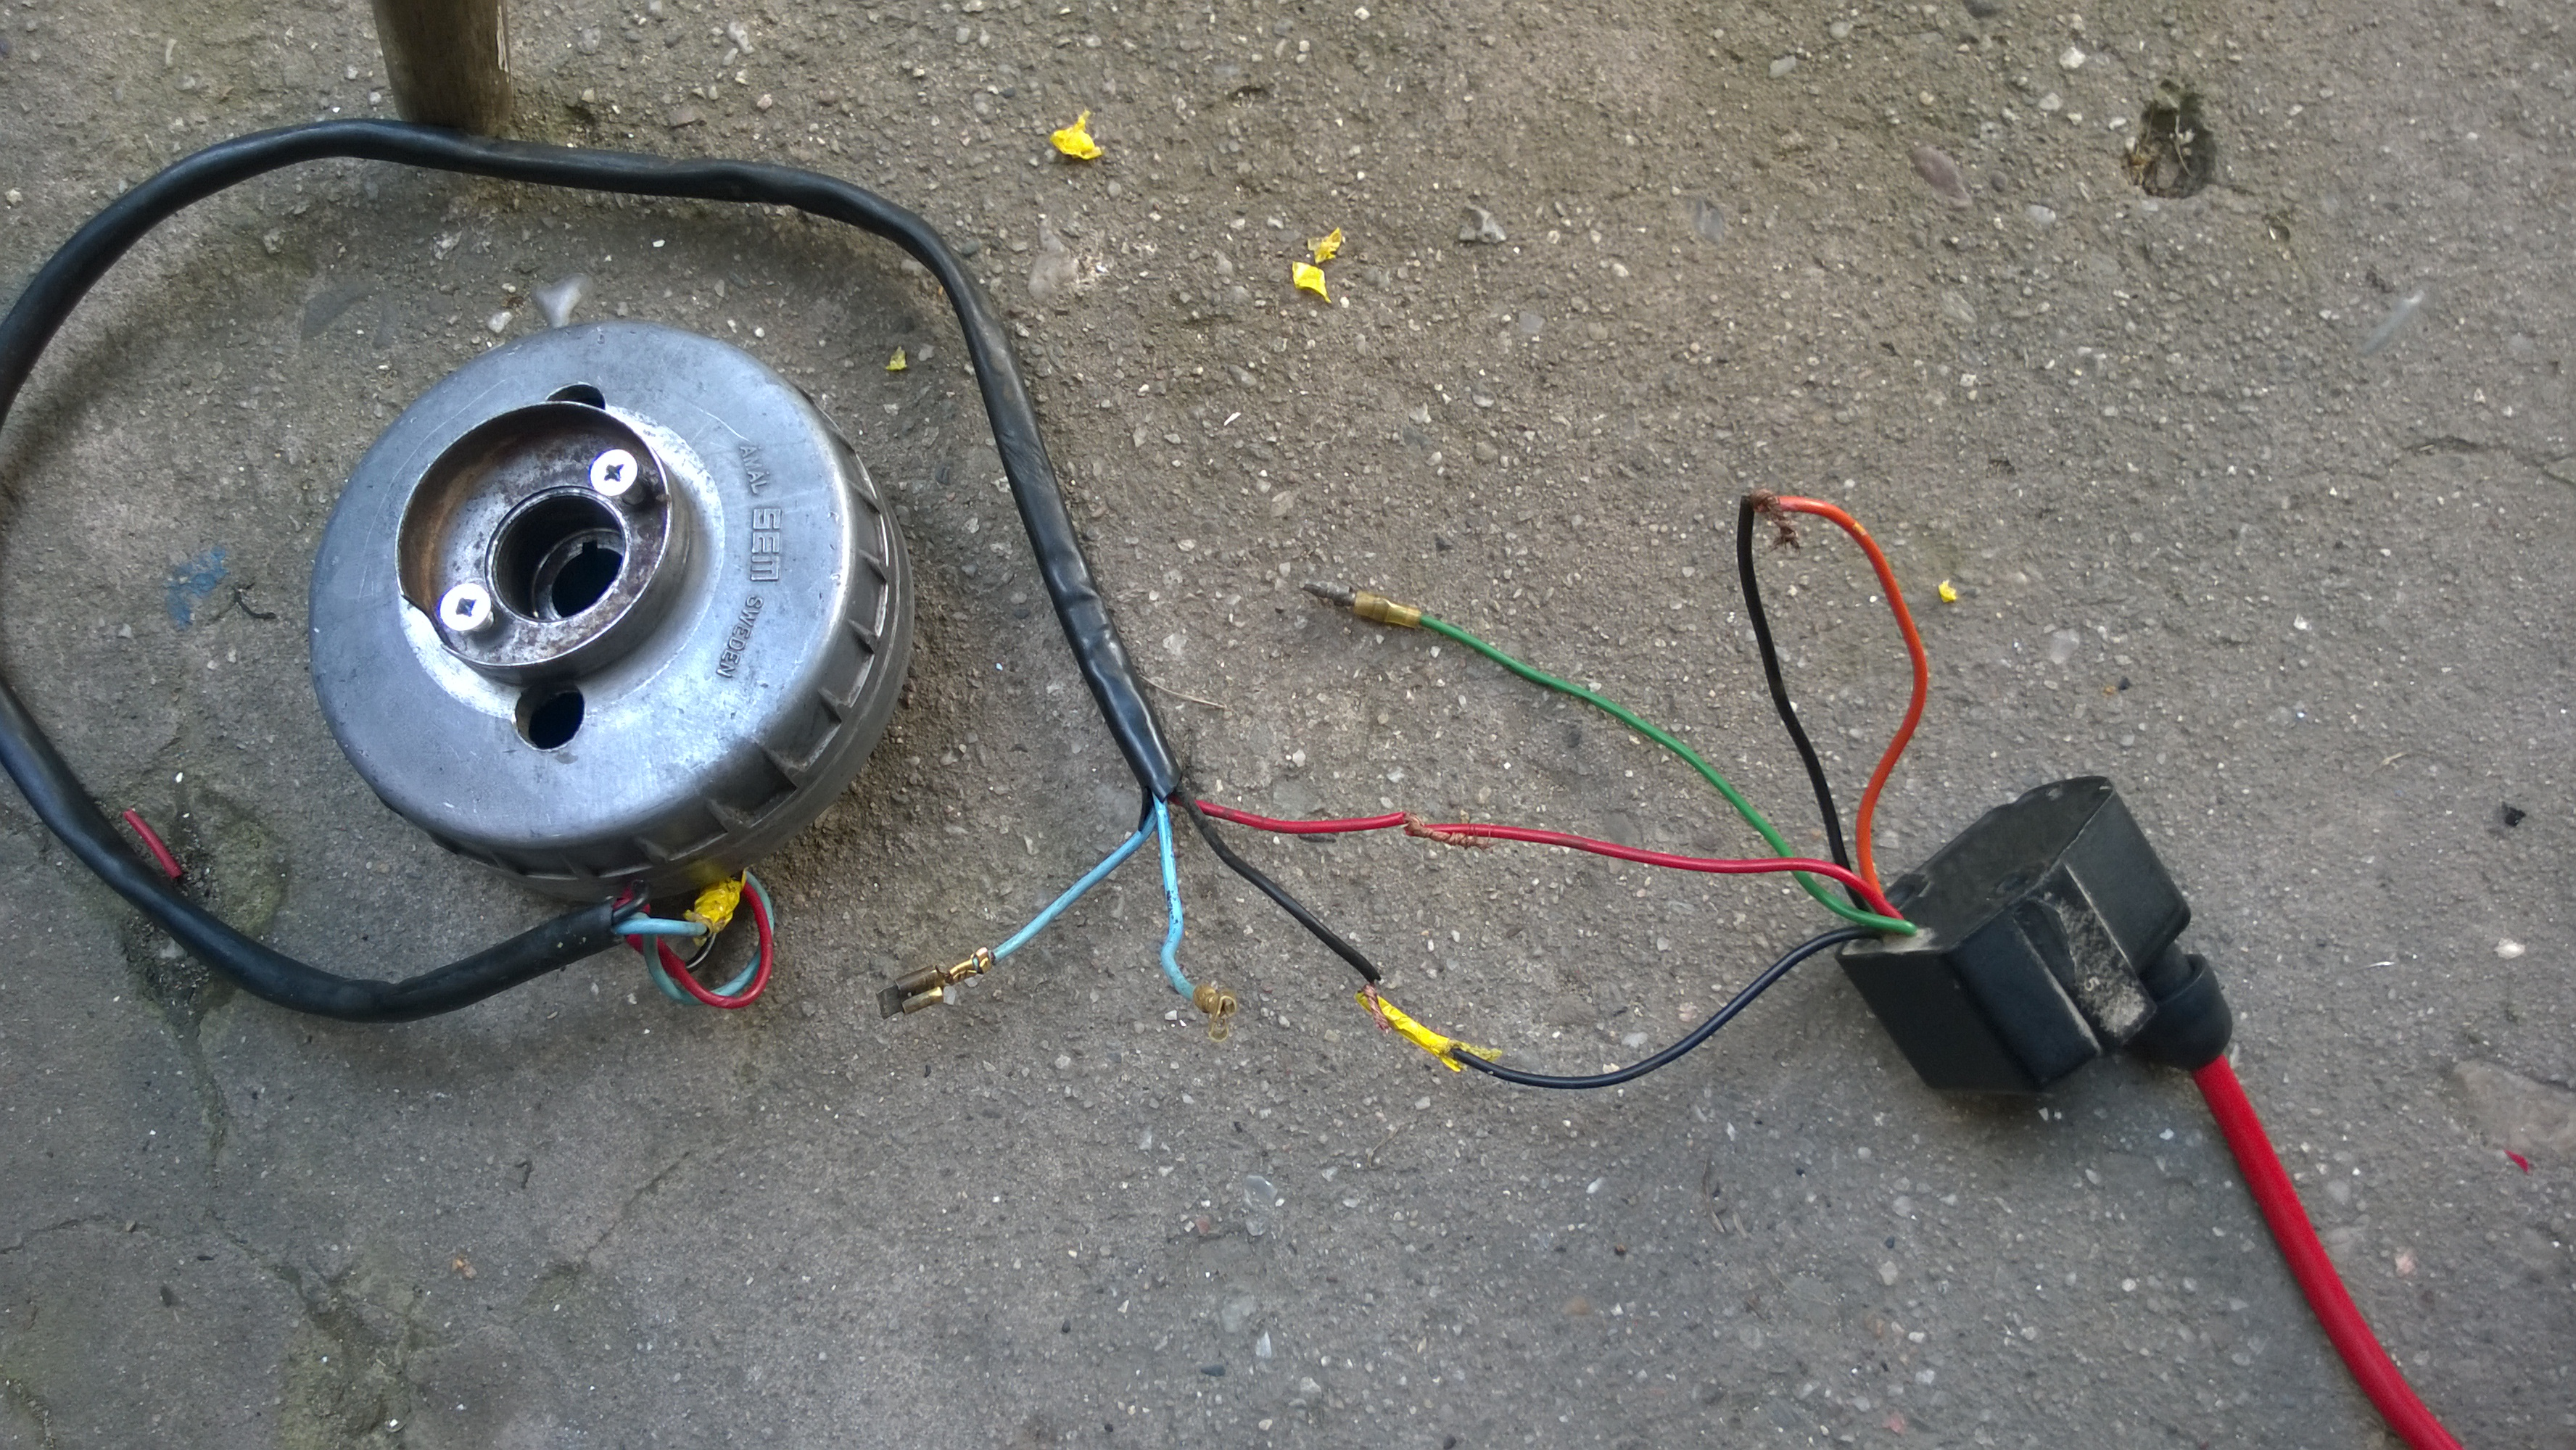 Ktm 250 Gs 1987 Amal Sem Ignition Forums Motorcycle Forum Yamaha Starter Switch Wiring Click Image For Larger Version Name Wp 20180726 005 Views 89 Size 264